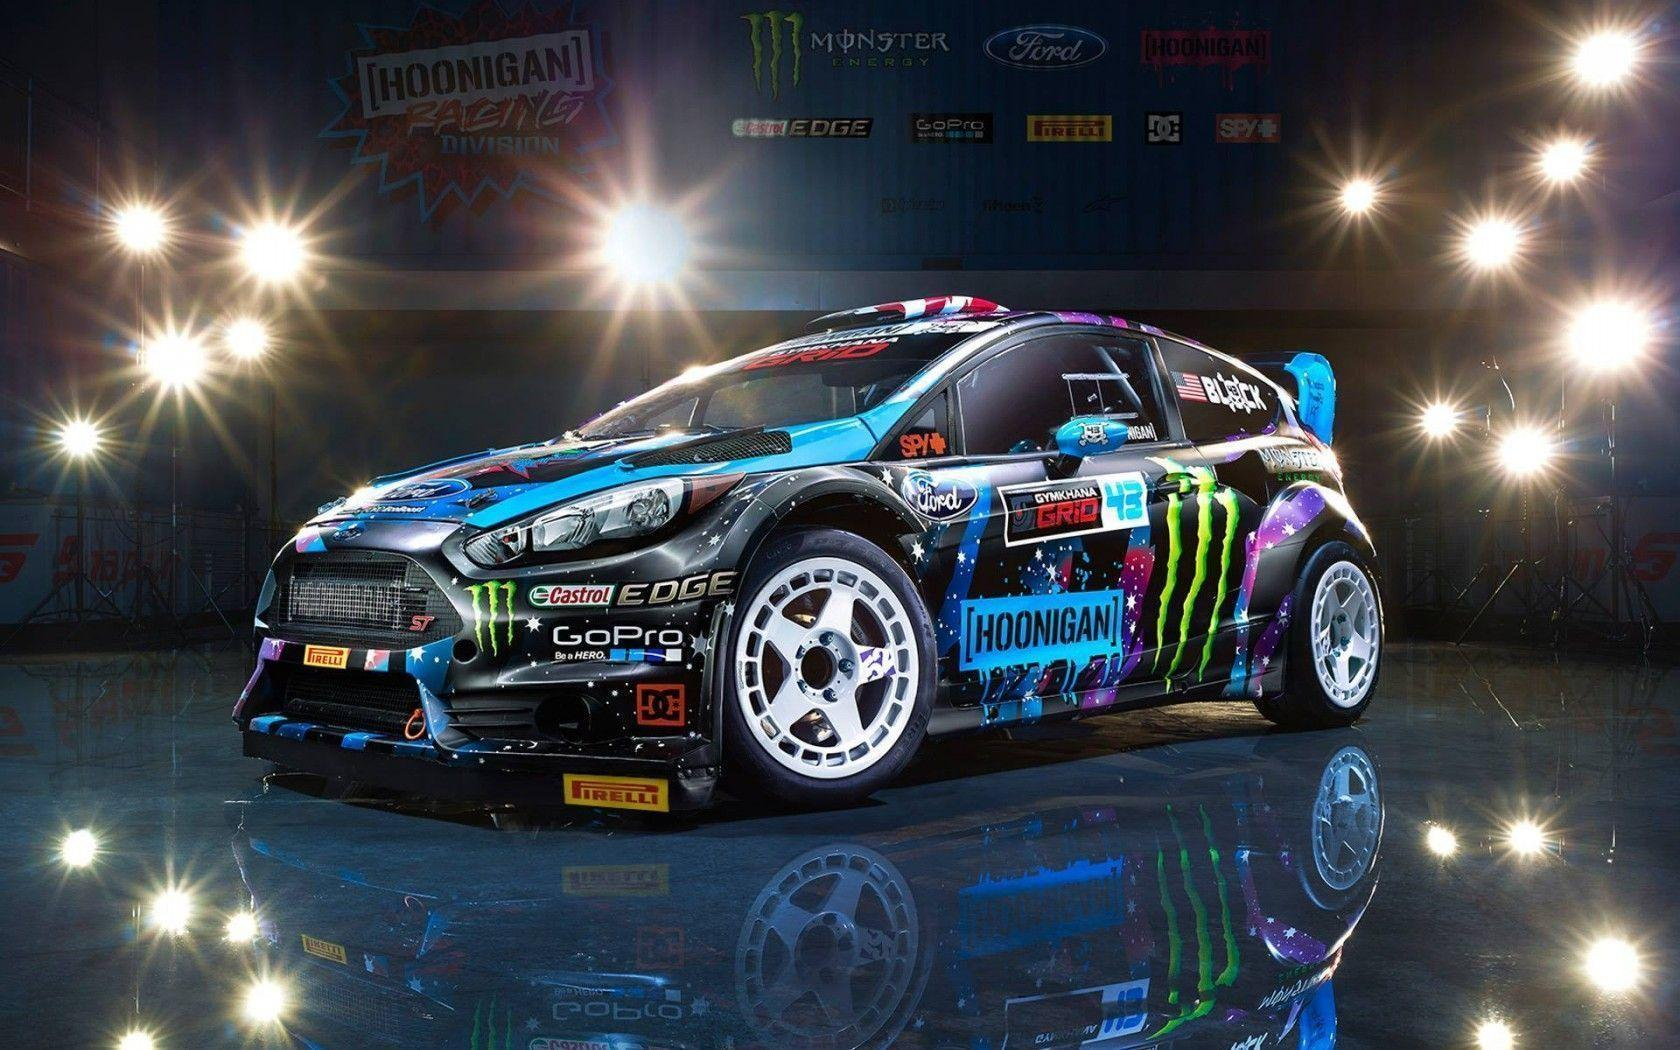 Ken Block Ford Fiesta 2015 Wallpapers - Wallpaper Cave